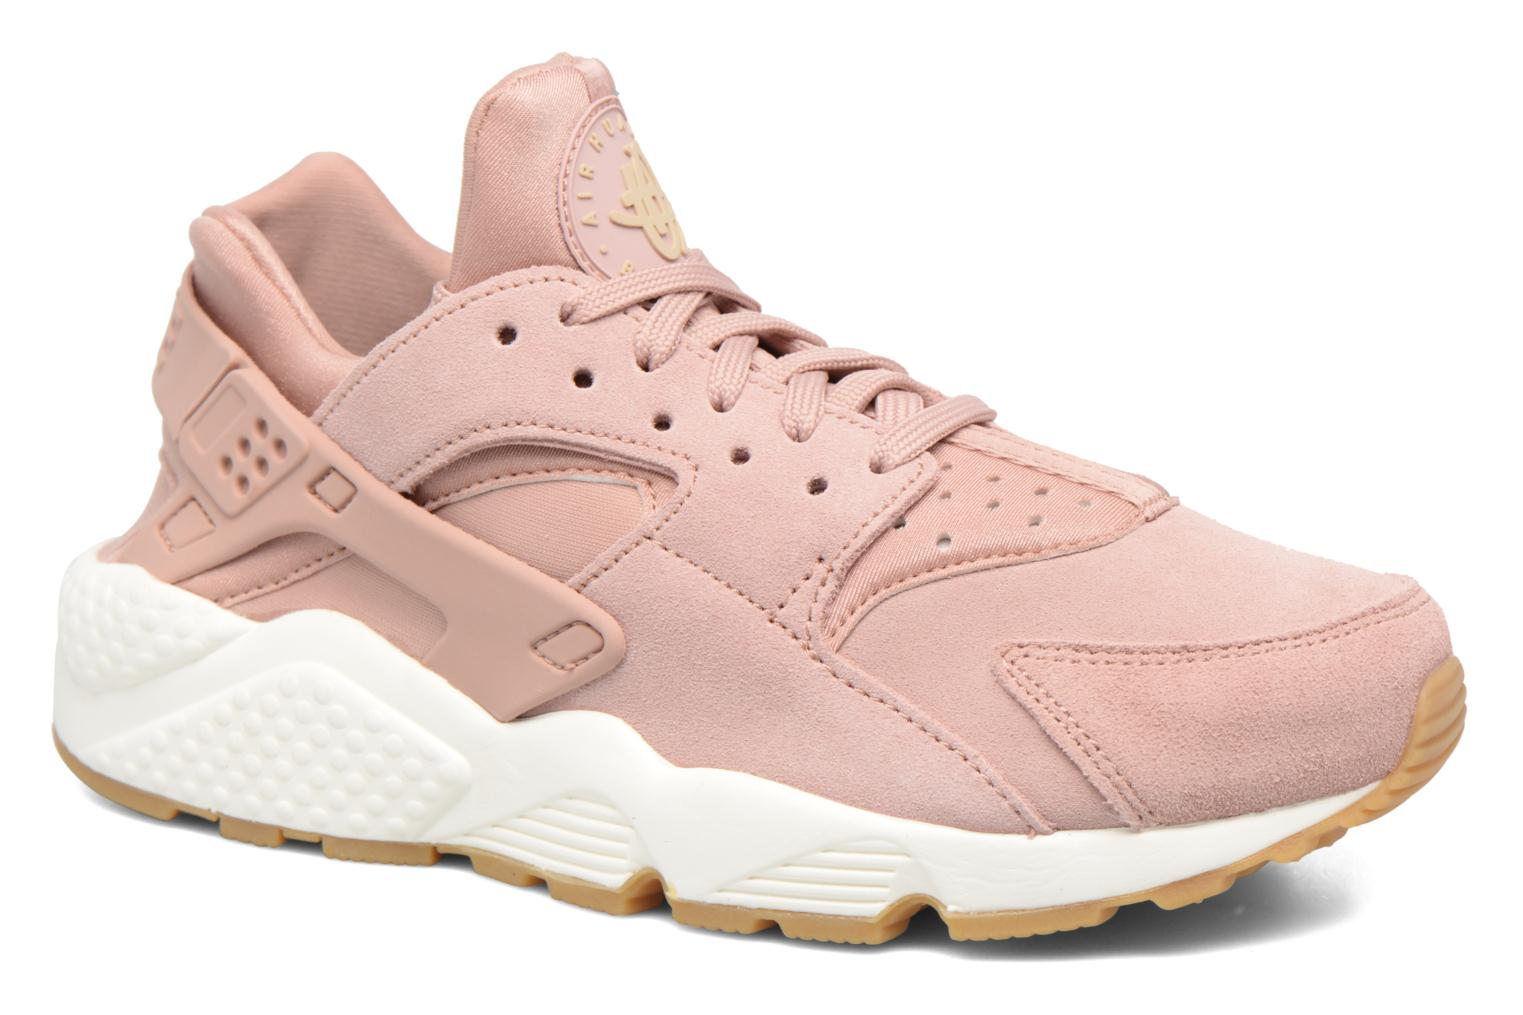 Baskets NikeWmns Air Huarache Run Sd Mwi2H